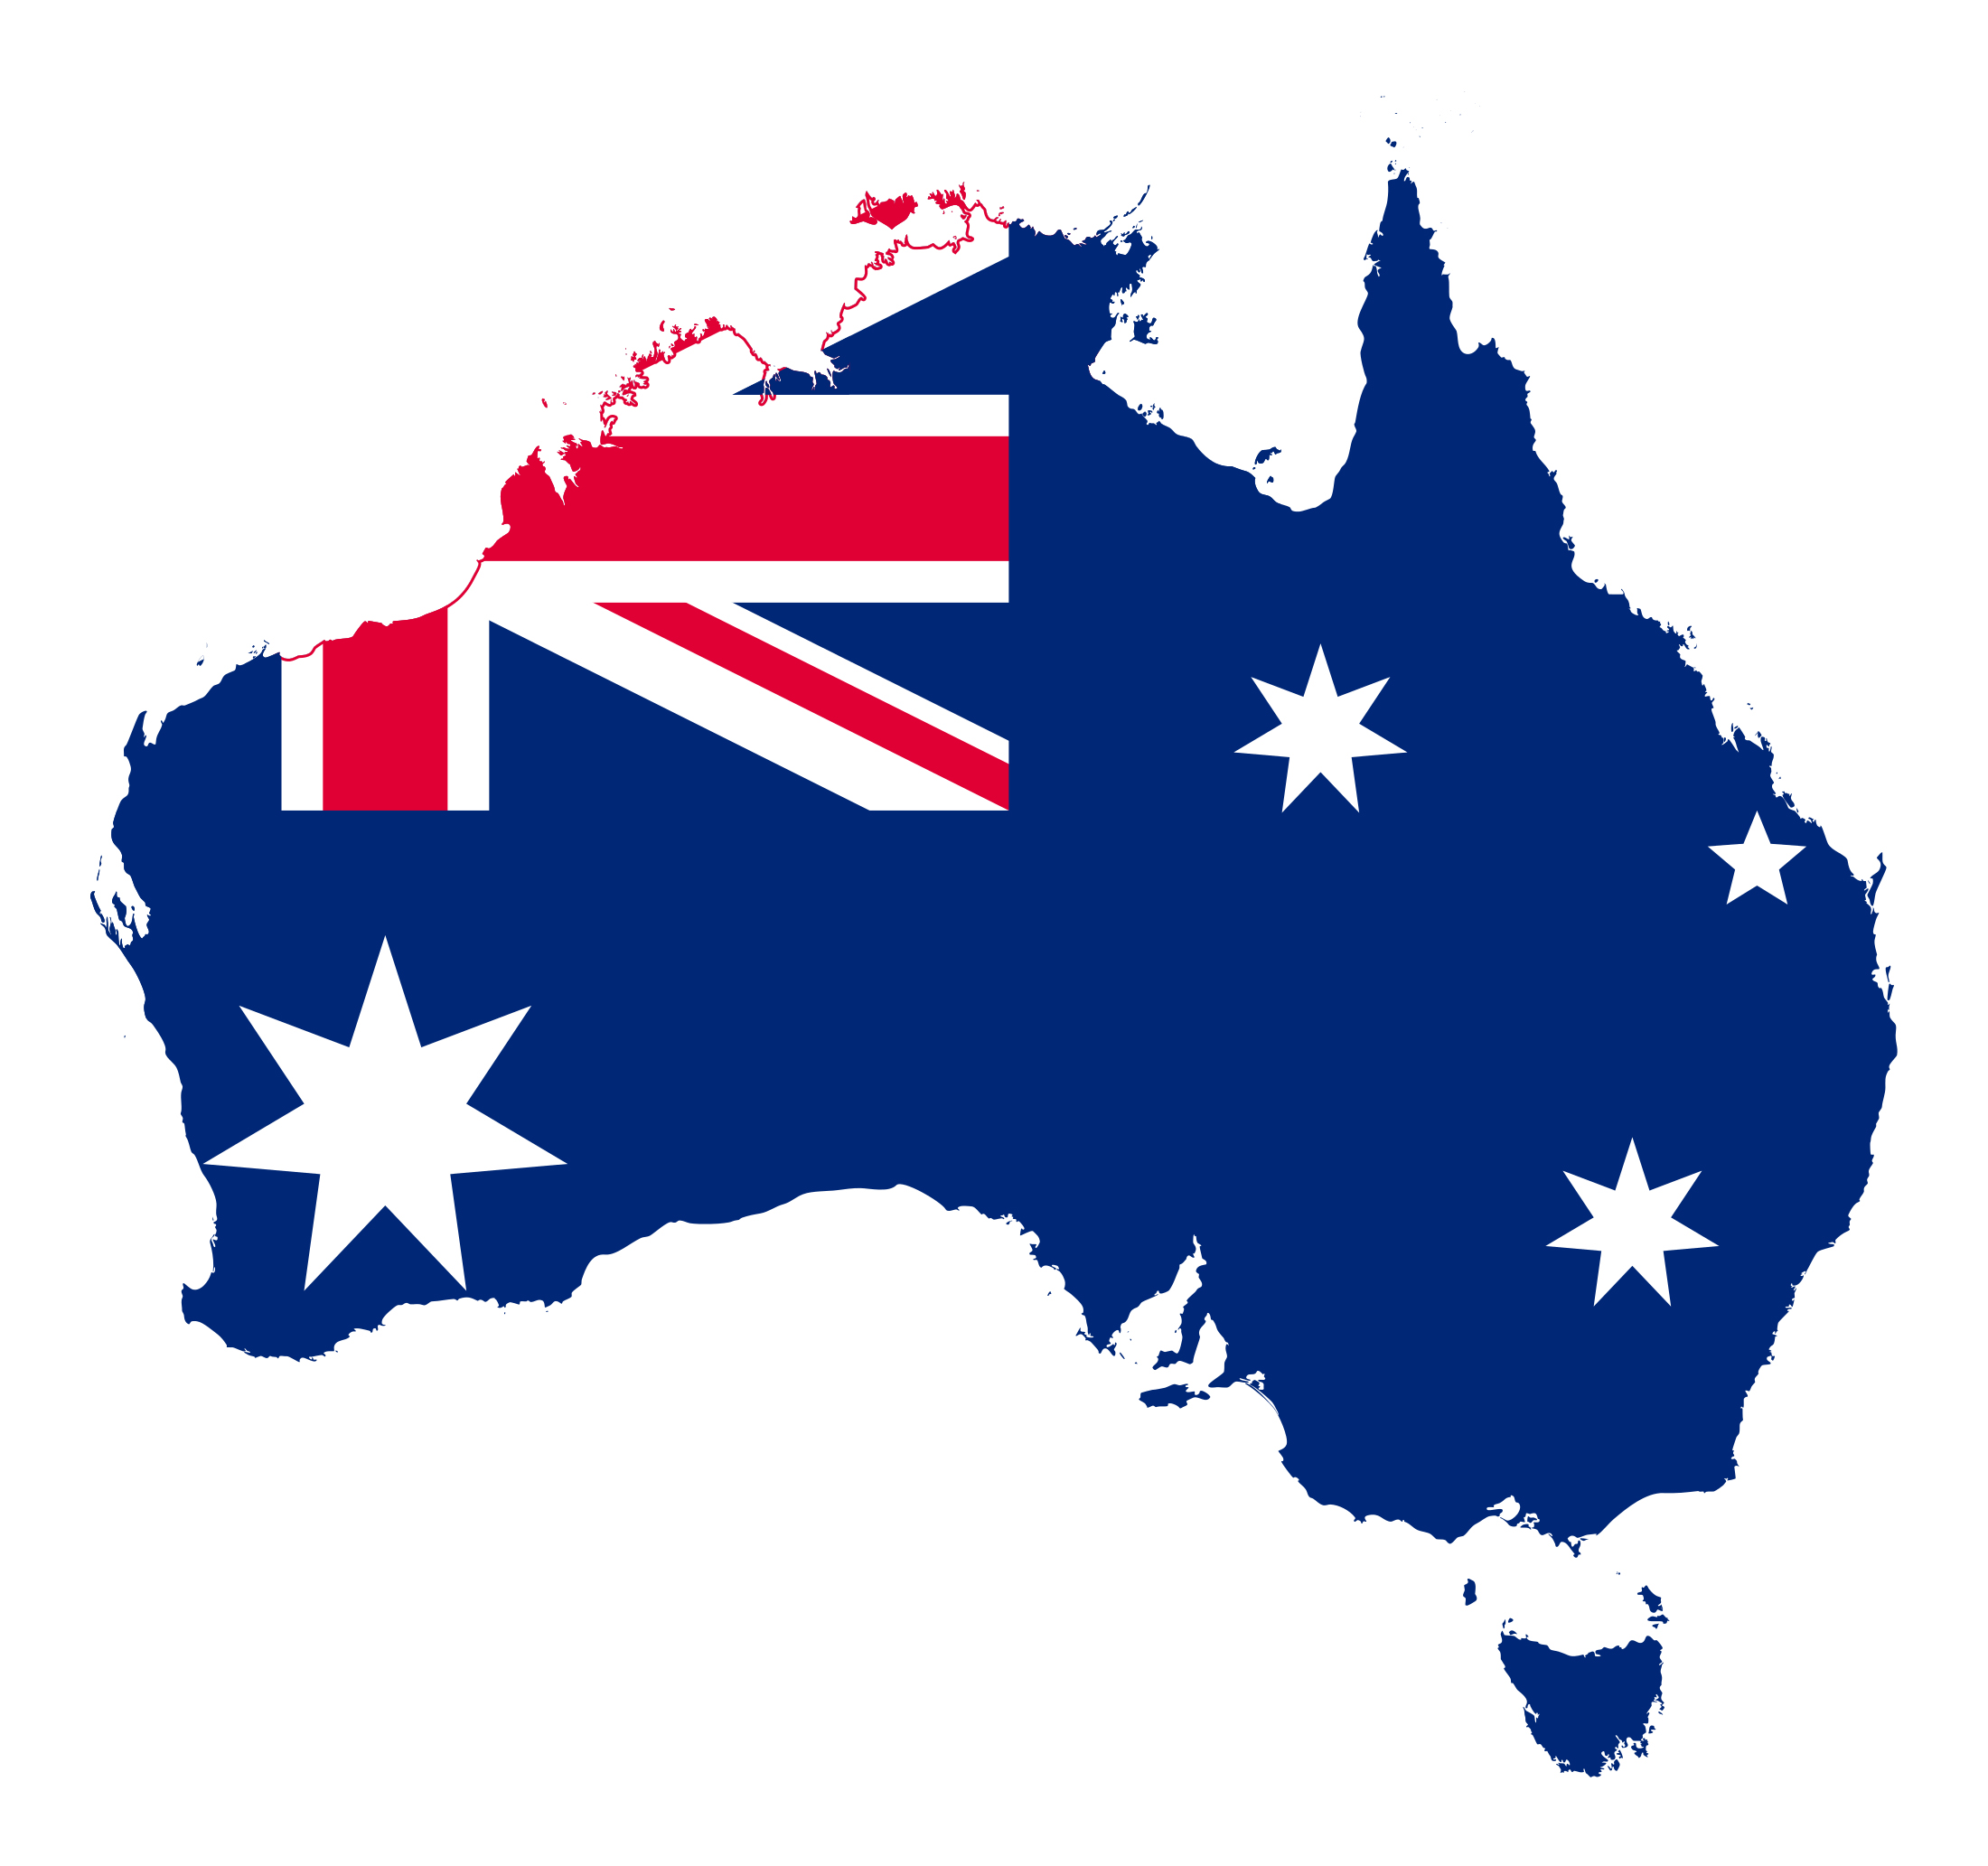 Large flag map of Australia | Australia | Oceania | Mapsland ... on create a pushpin map, bangladesh map, home map, pin map, general map, city map, orientation map, continent map, police map, strategy map, west africa map, game map, calendar map, food map, armenia map, class map, peru's map, economy map, church map, scroll map,